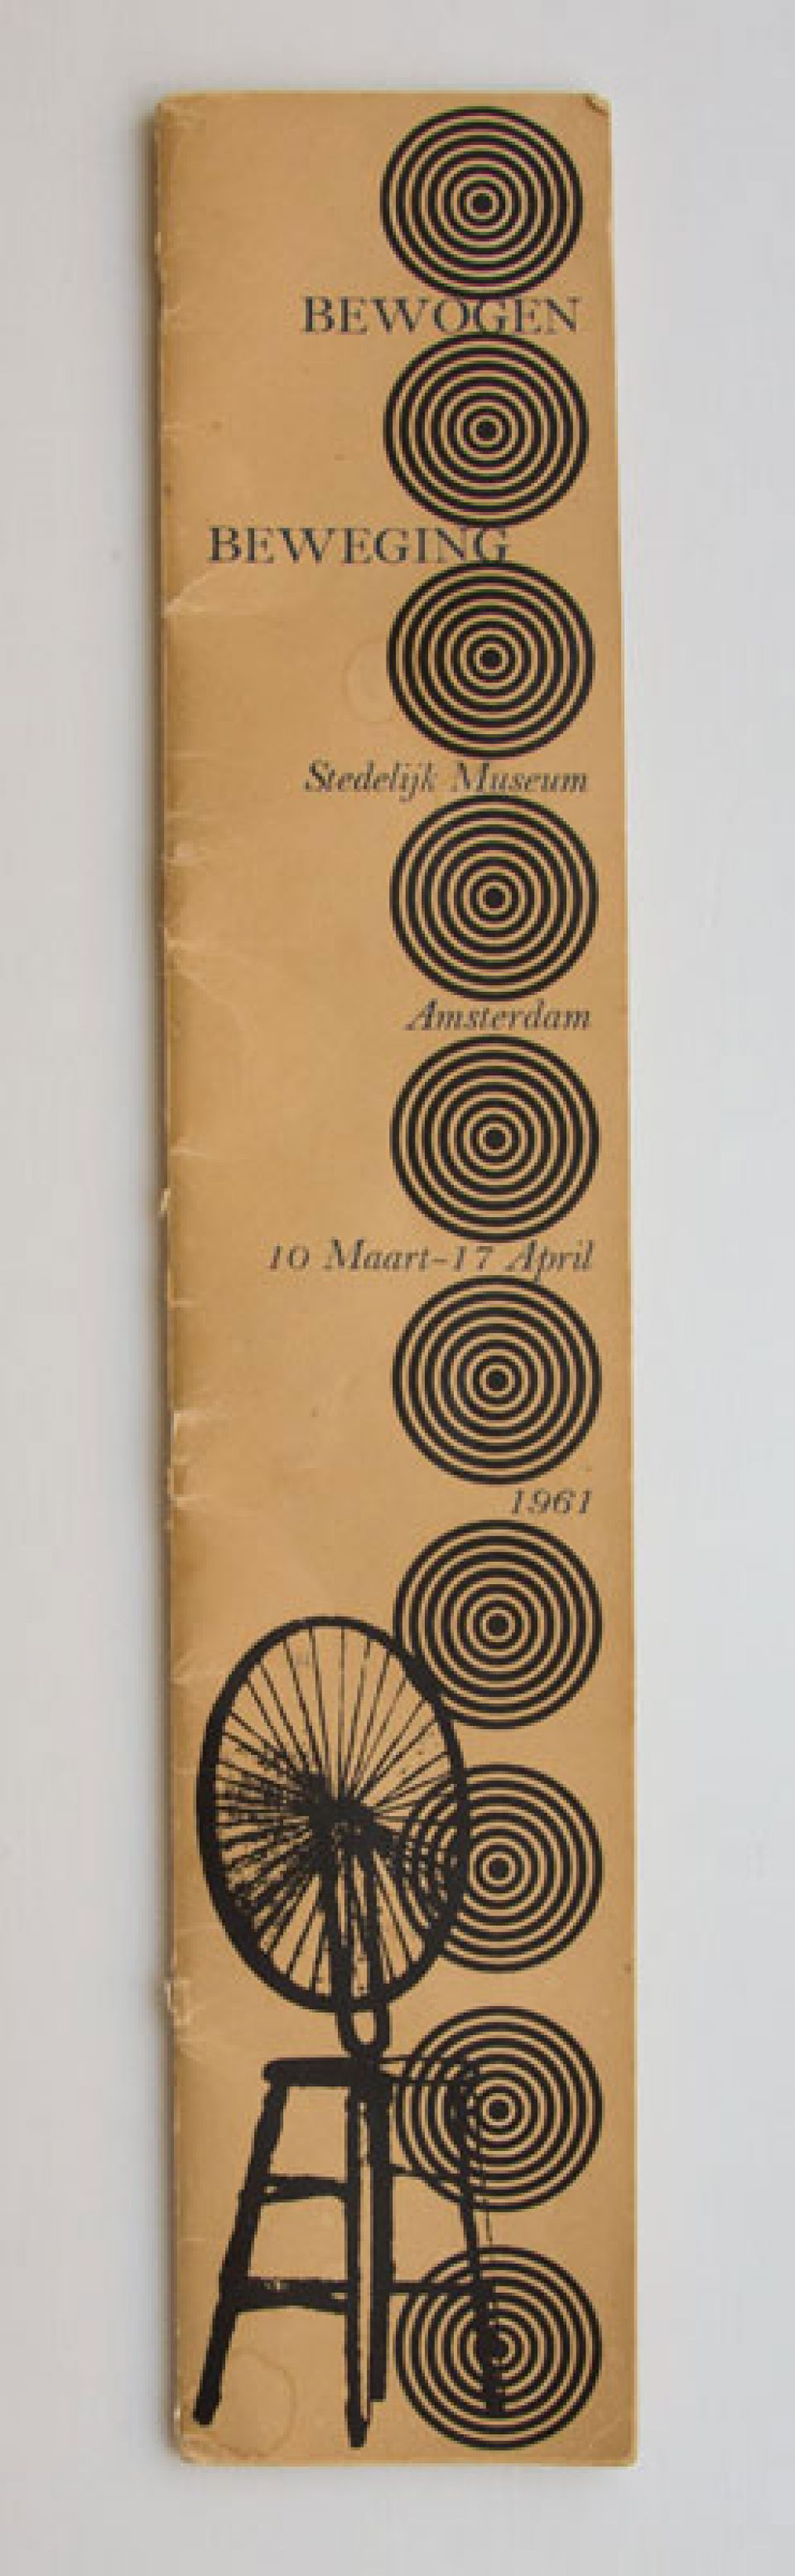 Catalogue cover for 'Bewogen Beweging' (1961)